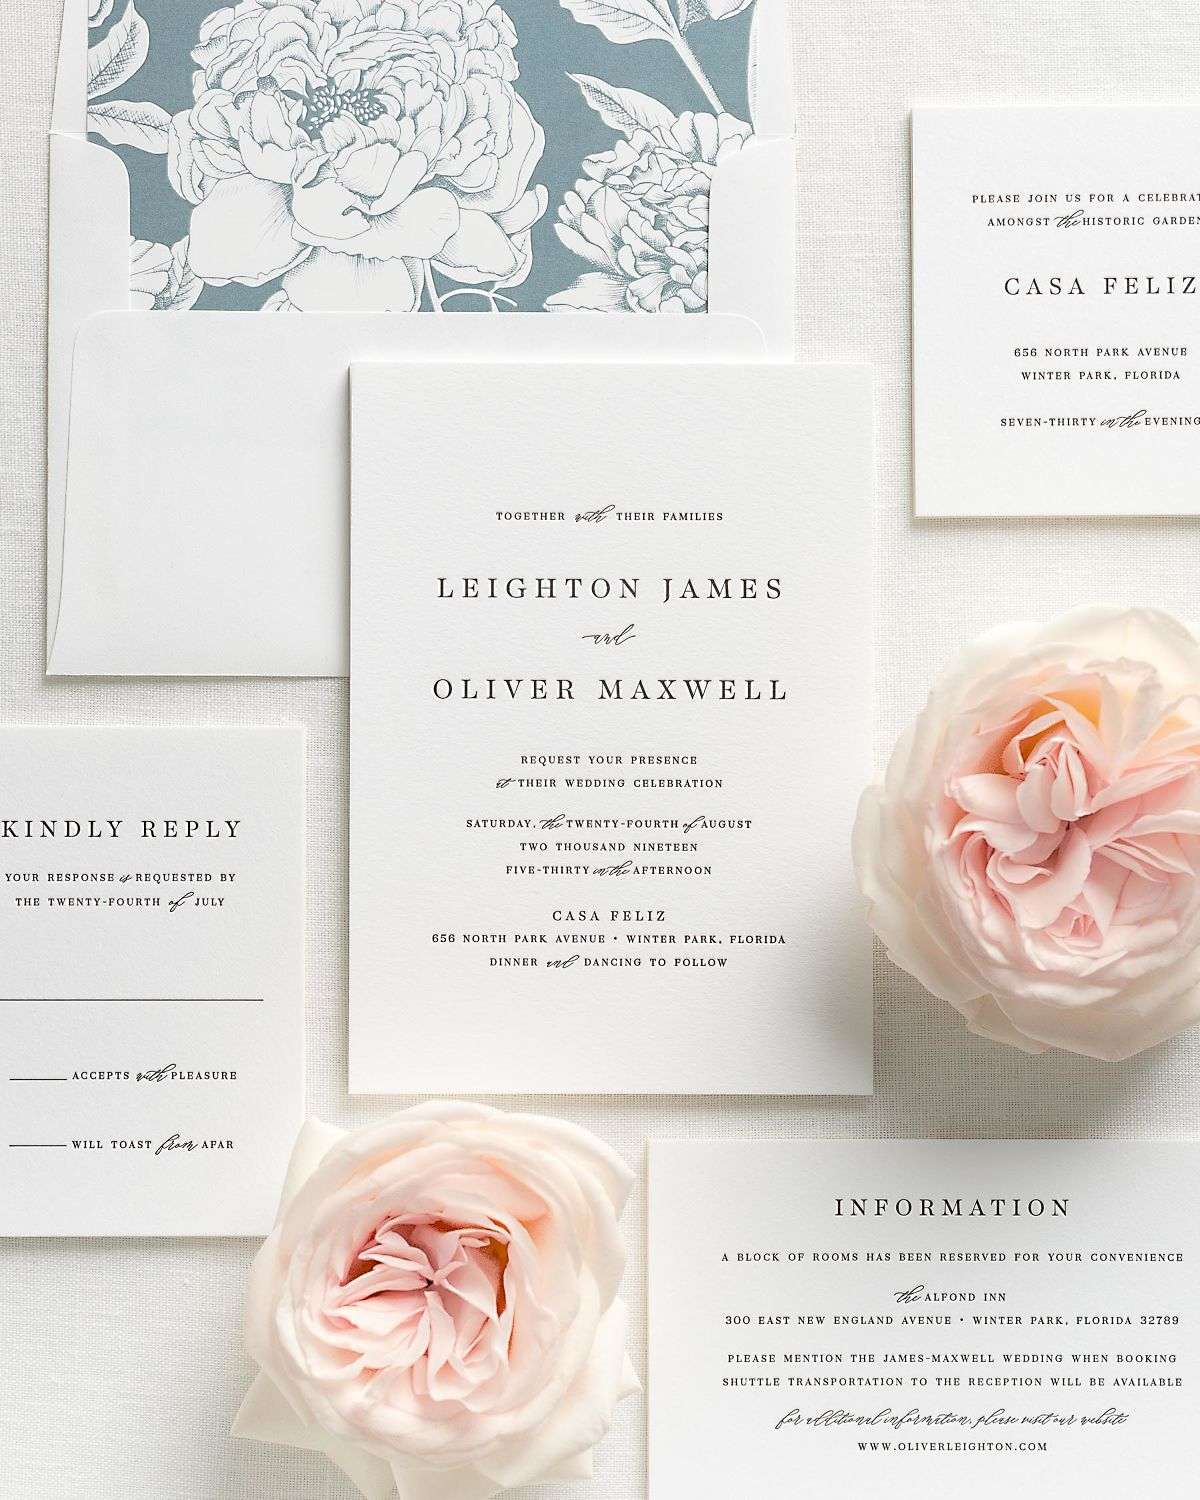 Letterpress Wedding Invitations with Mineral Blooms Envelope Liner and Matching Accessories